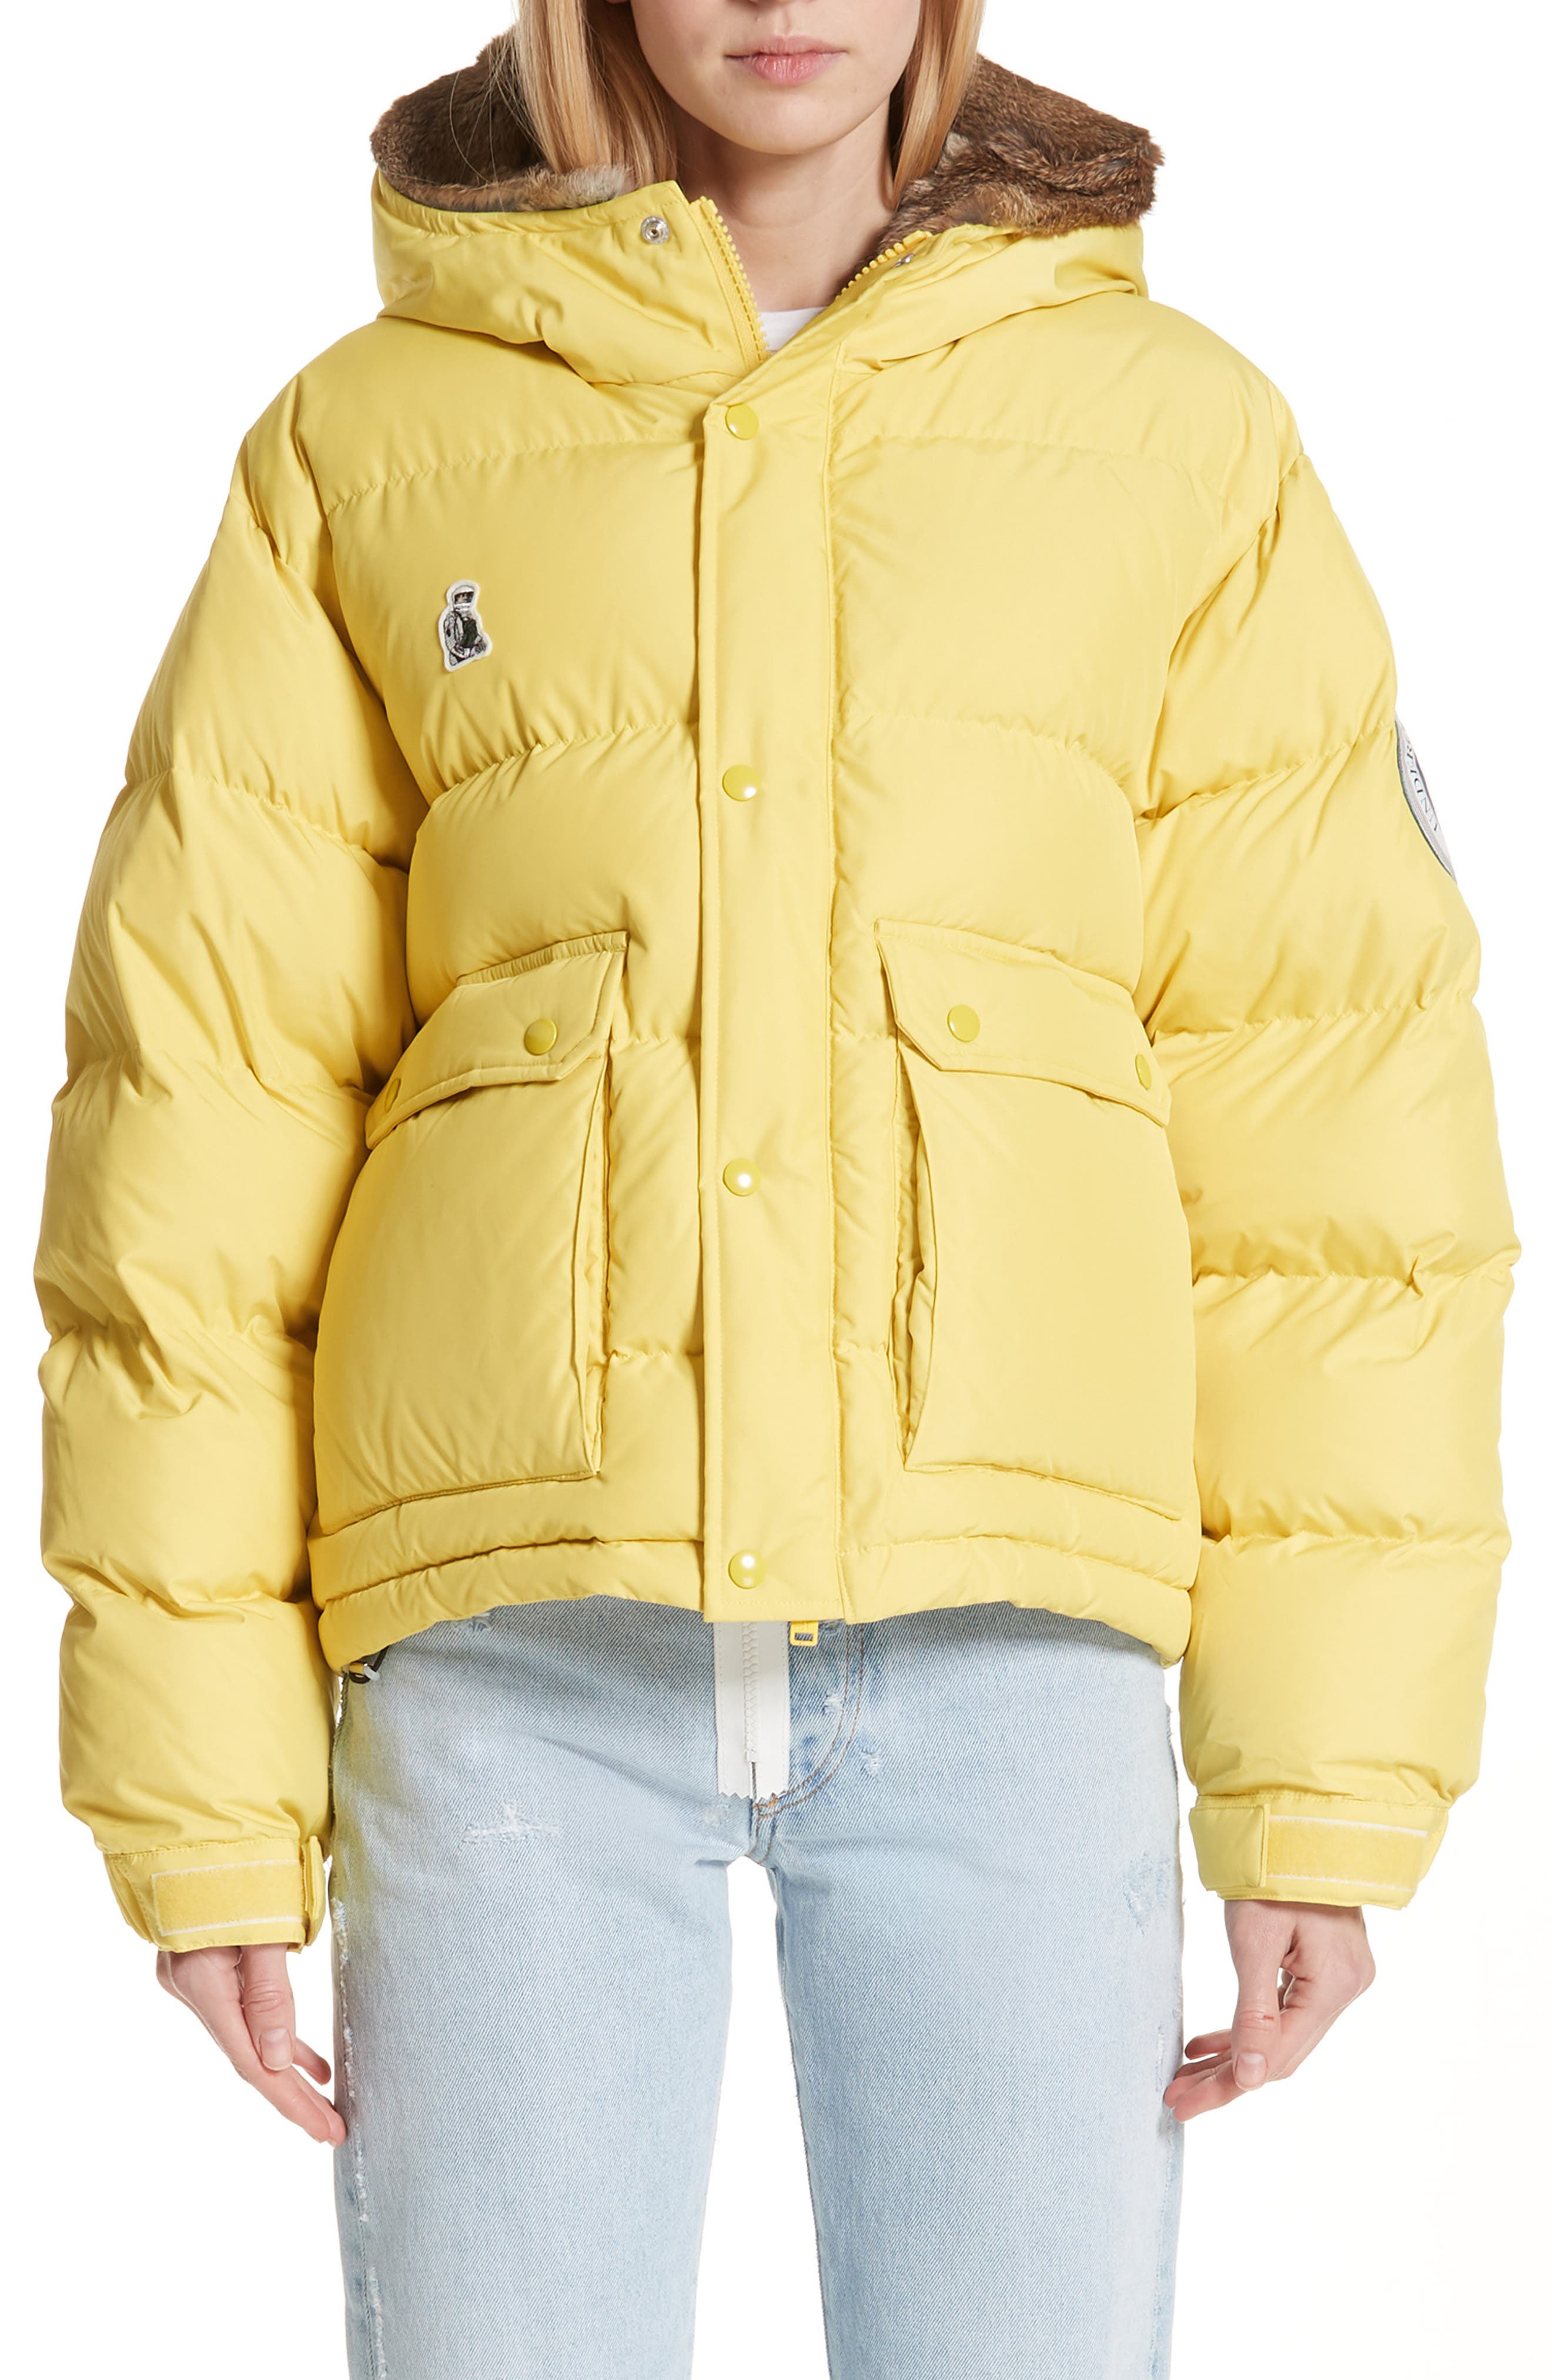 UNDERCOVER Hooded Puffer Coat With Genuine Rabbit Fur Trim, Main, color, 700